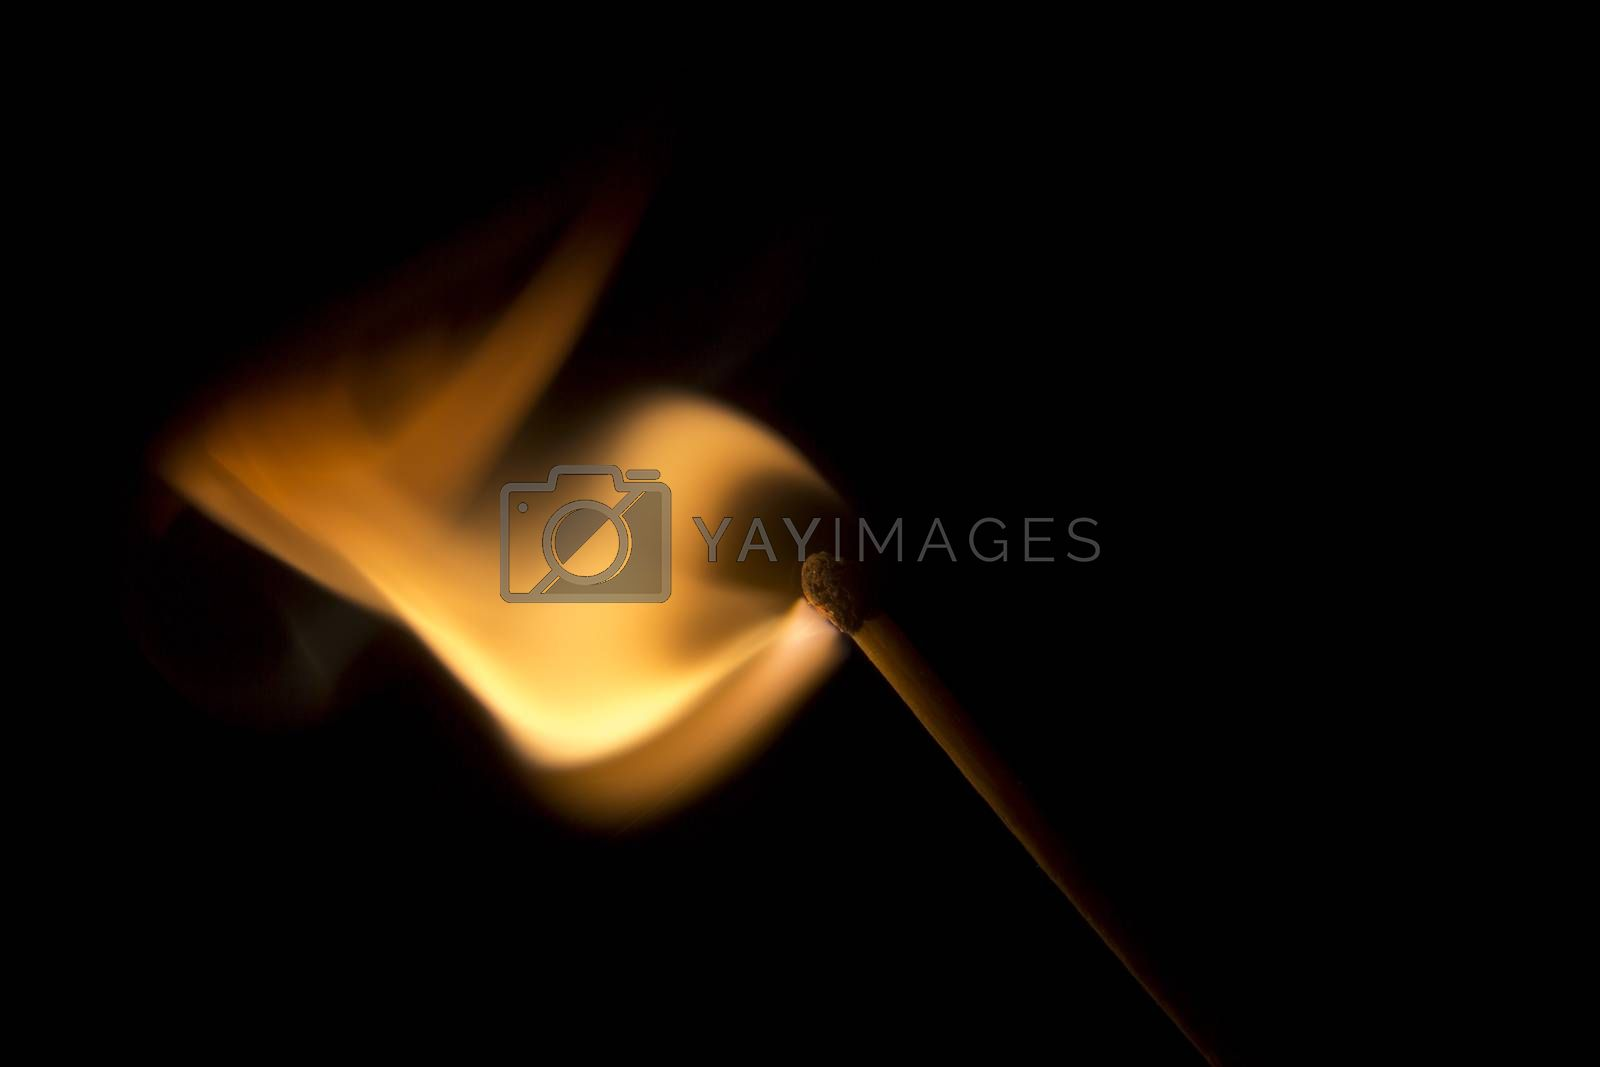 Match Igniting in a burst of fire. Macro Image.